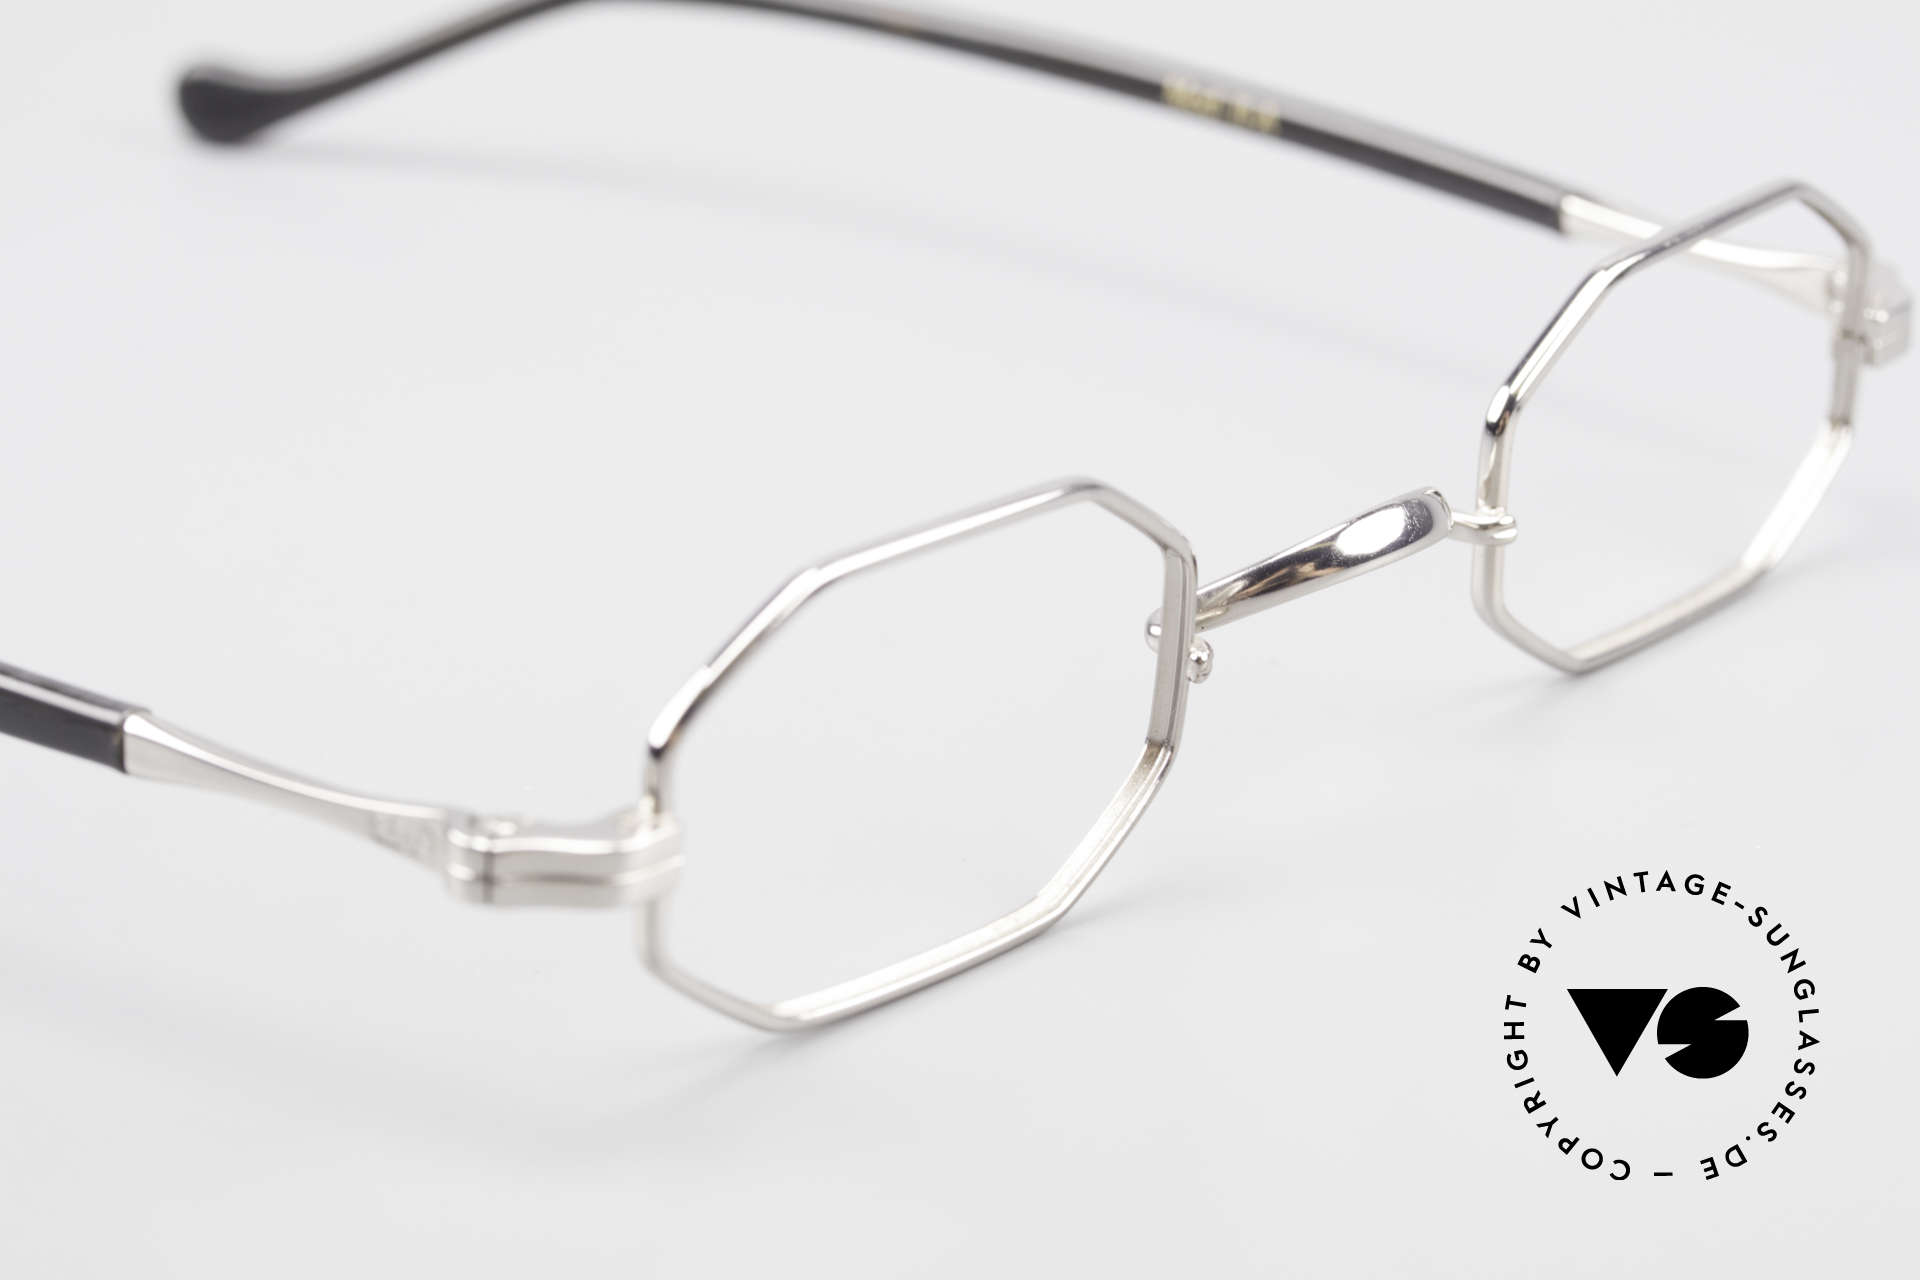 Lunor Octag II-A Octagonal Vintage Eyeglasses, NO RETRO EYEGLASSES; but a luxury vintage ORIGINAL, Made for Men and Women